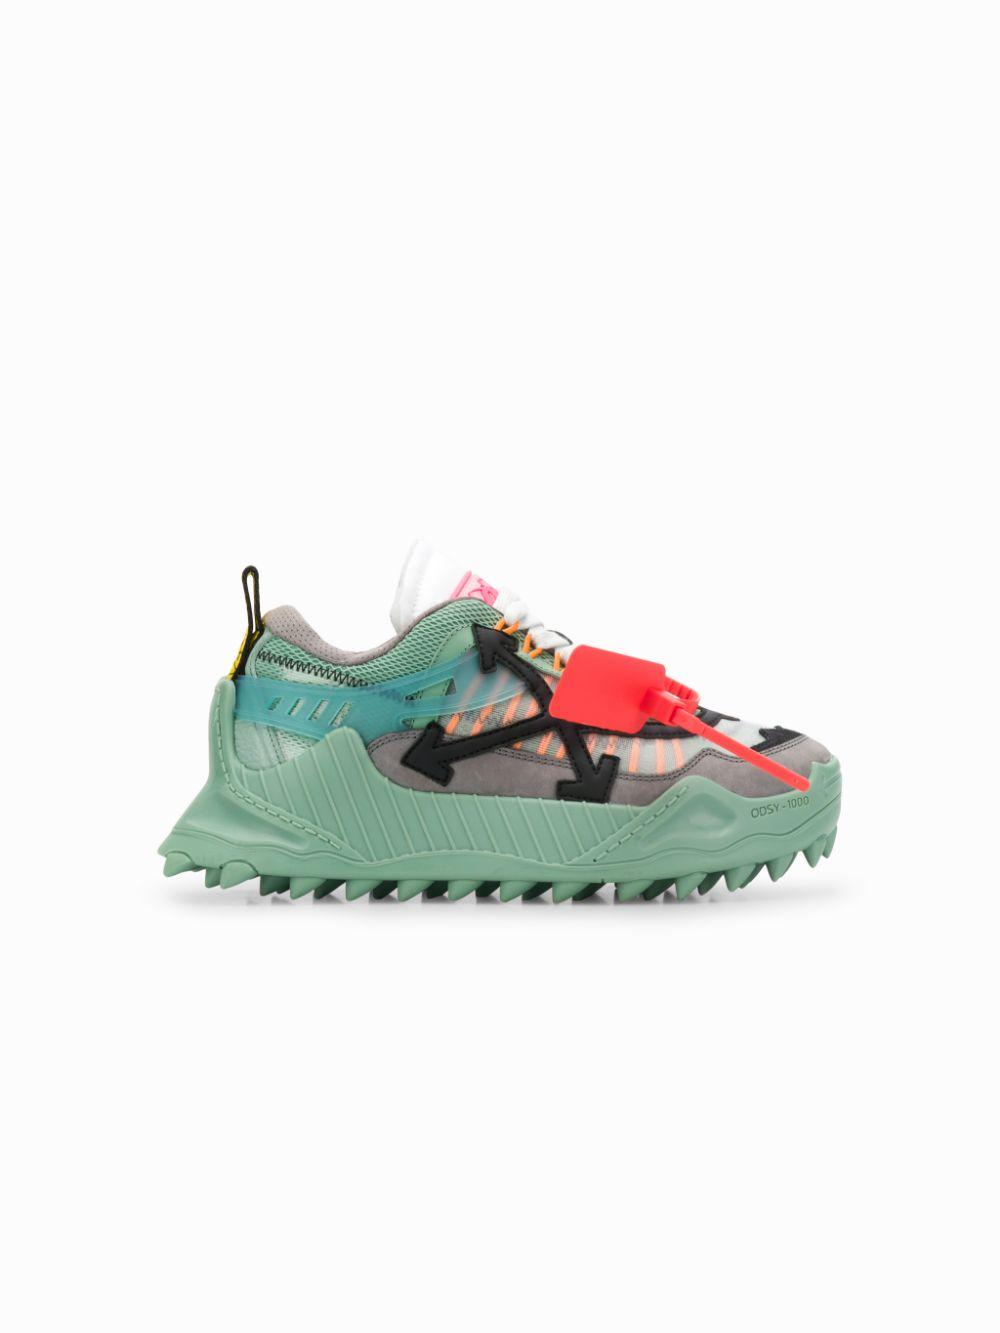 o Virgil Abloh Suede Odsy-1000 Sneakers